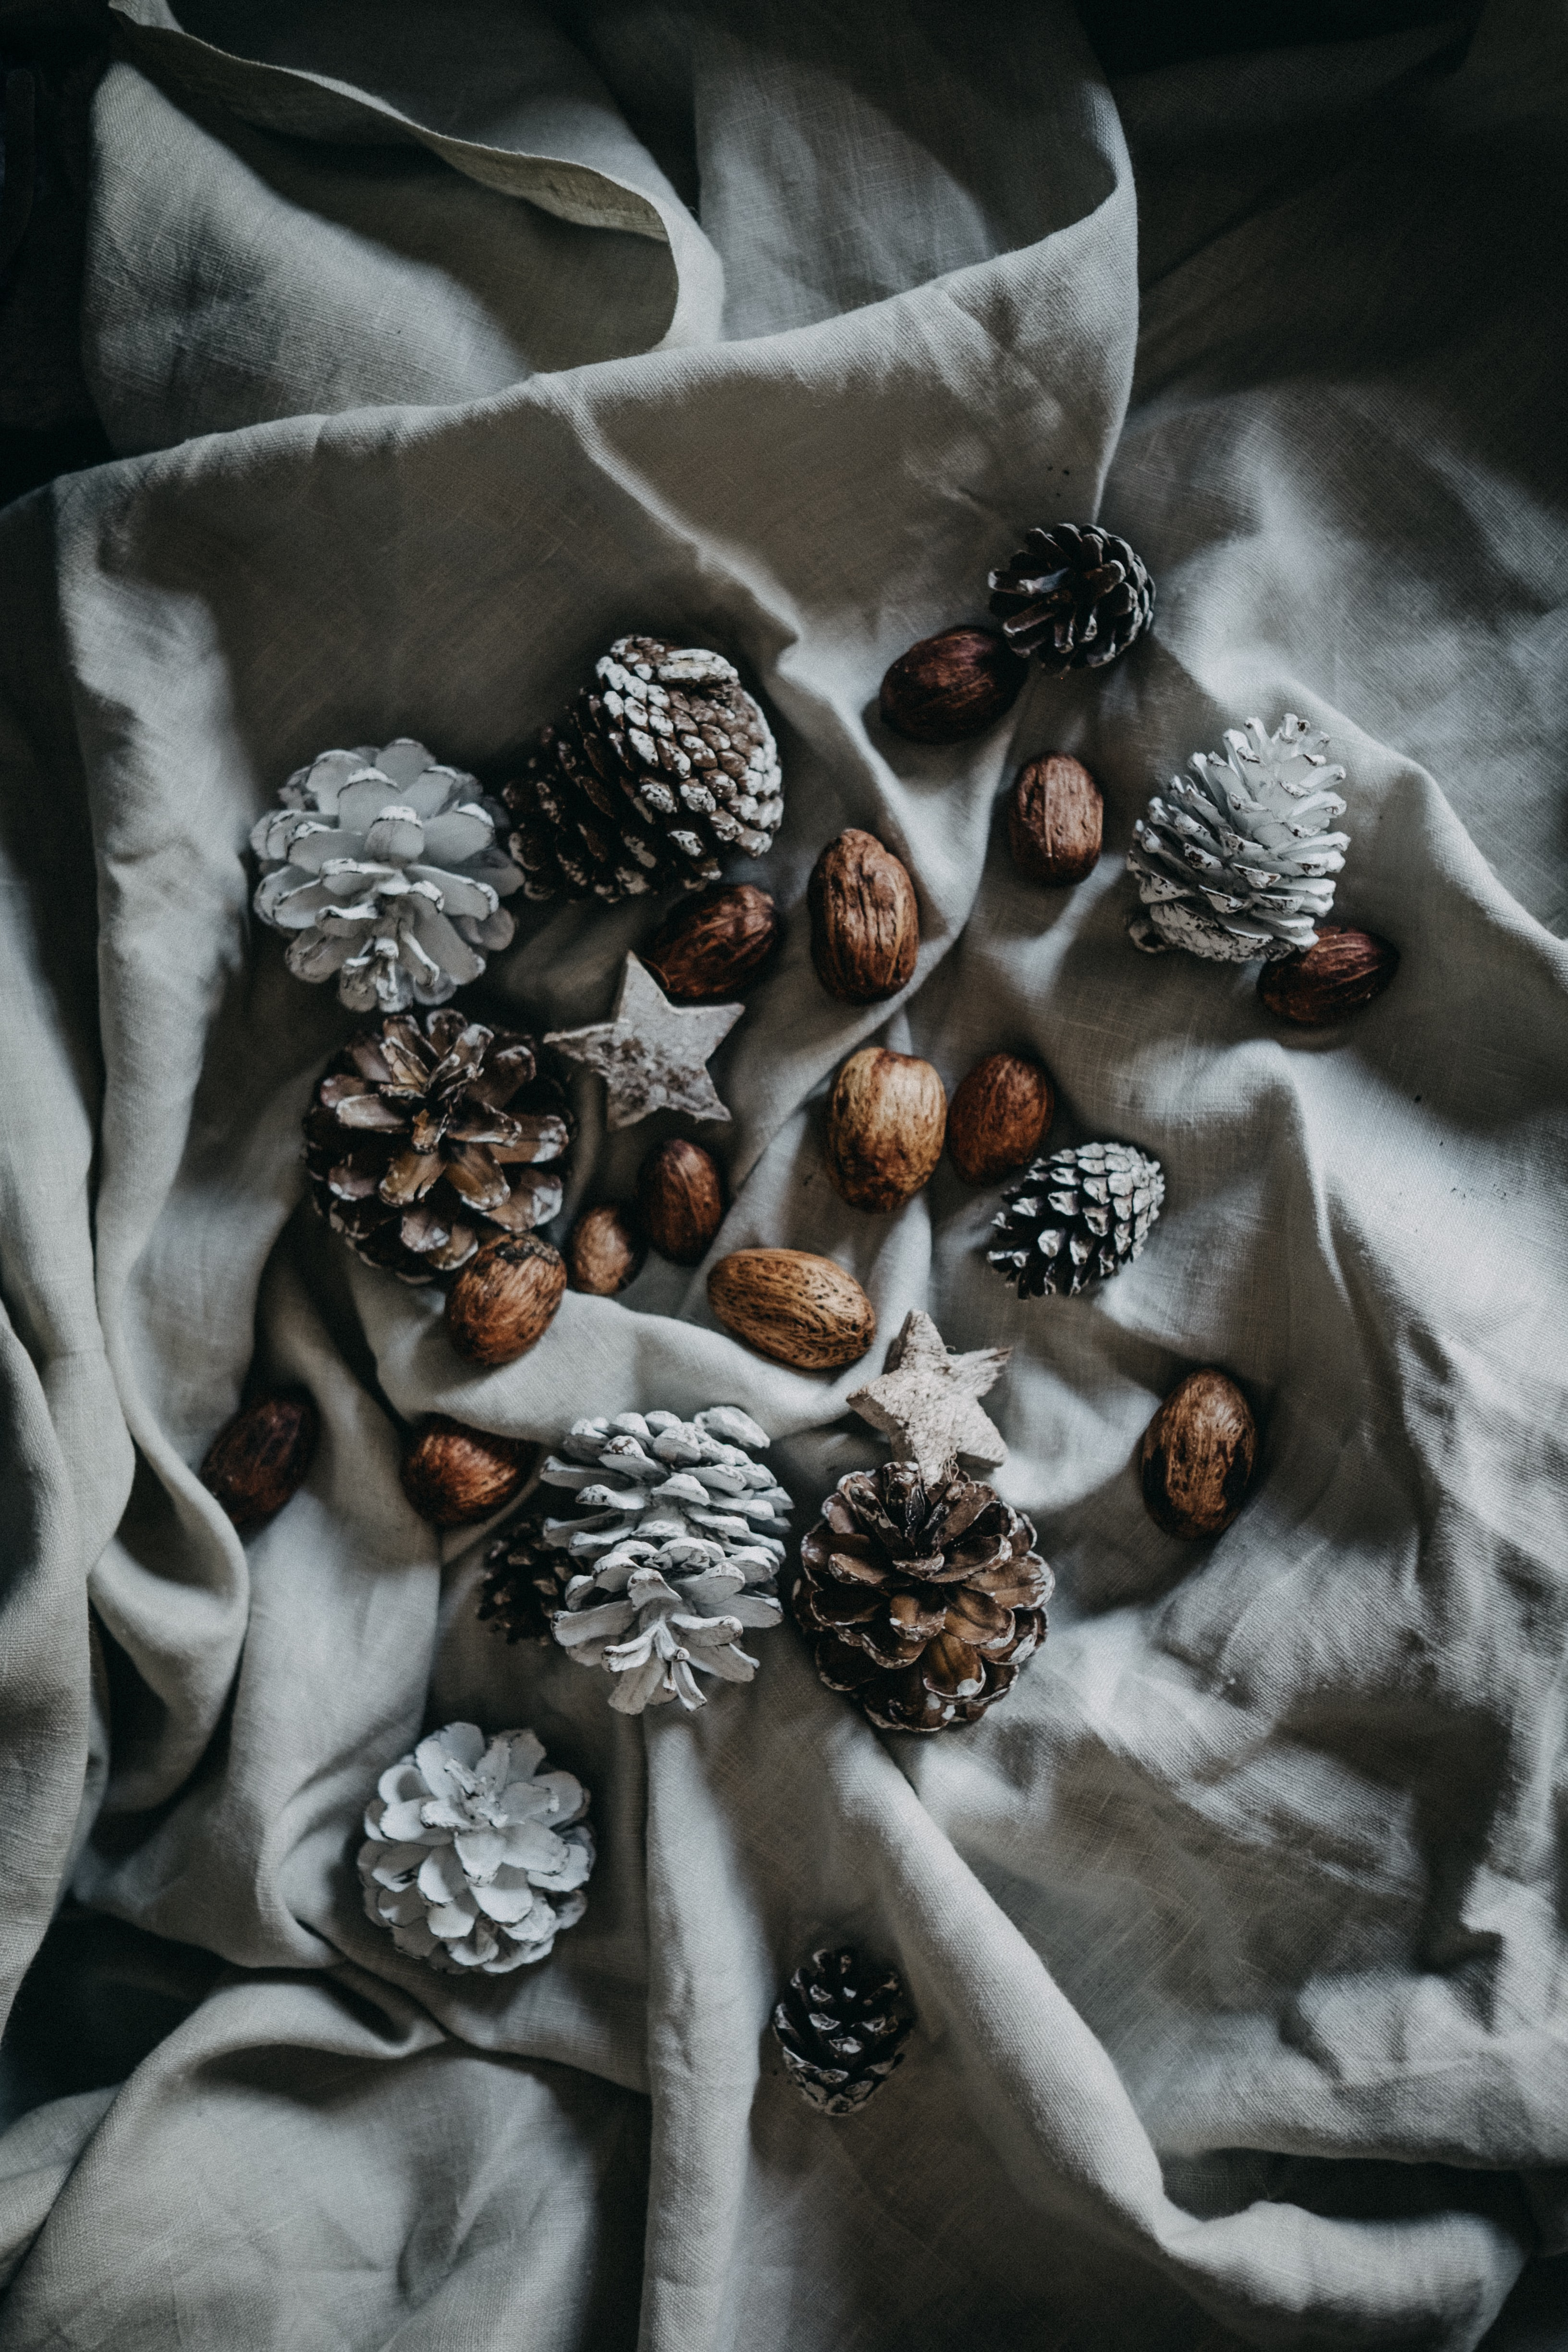 pinecone and nut on top of blanket